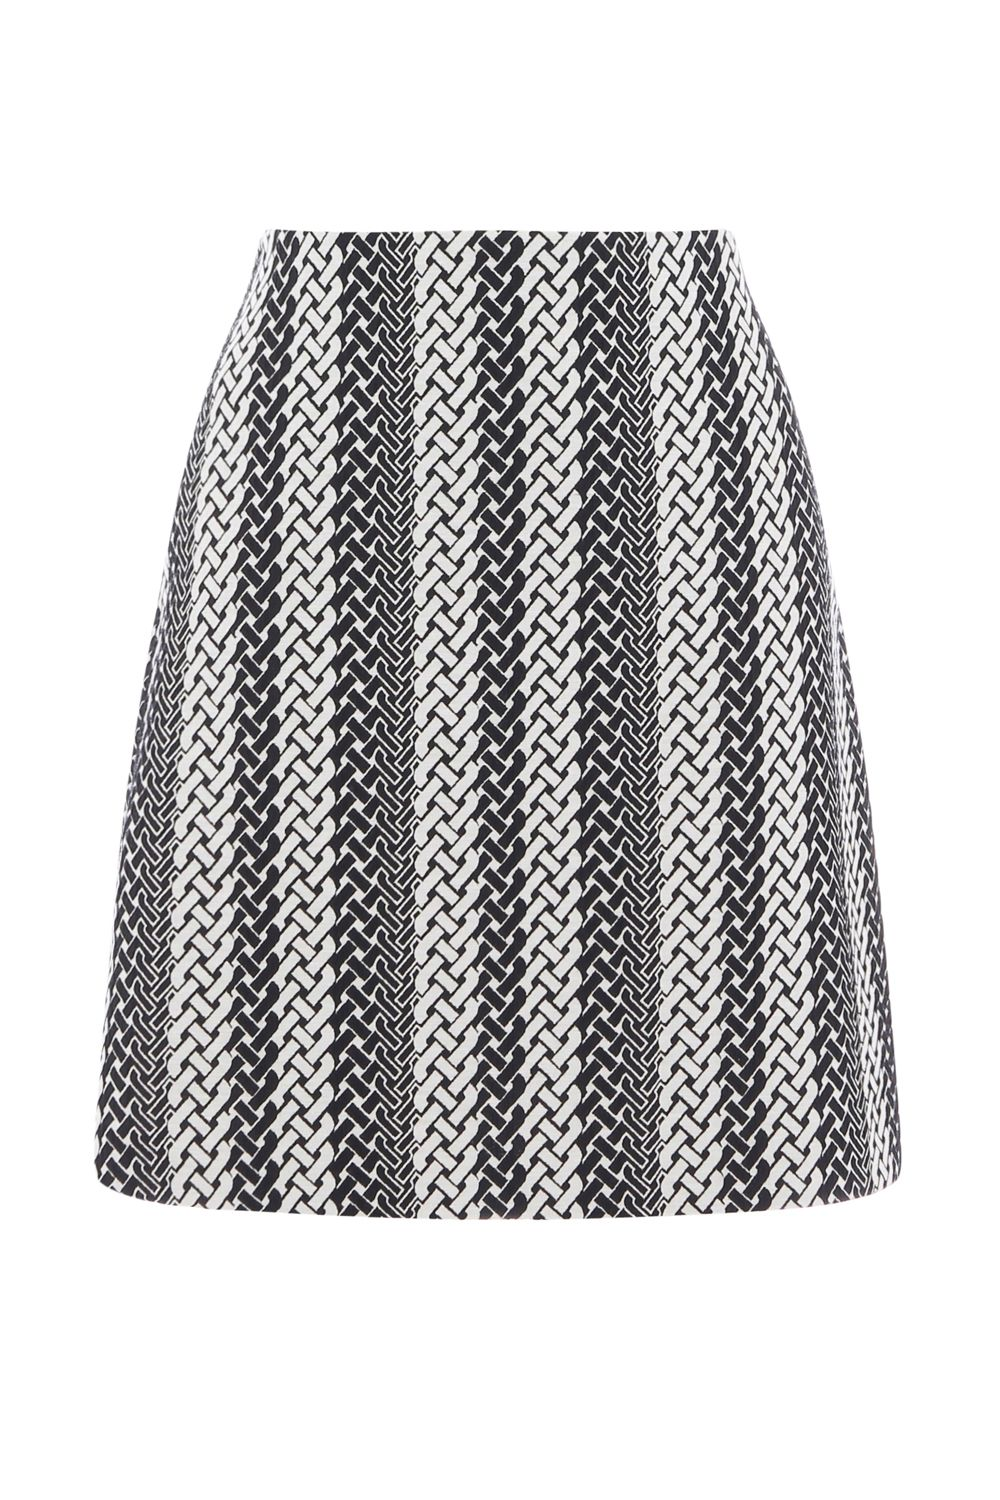 Warehouse Link Jacquard Skirt, Multi-Coloured